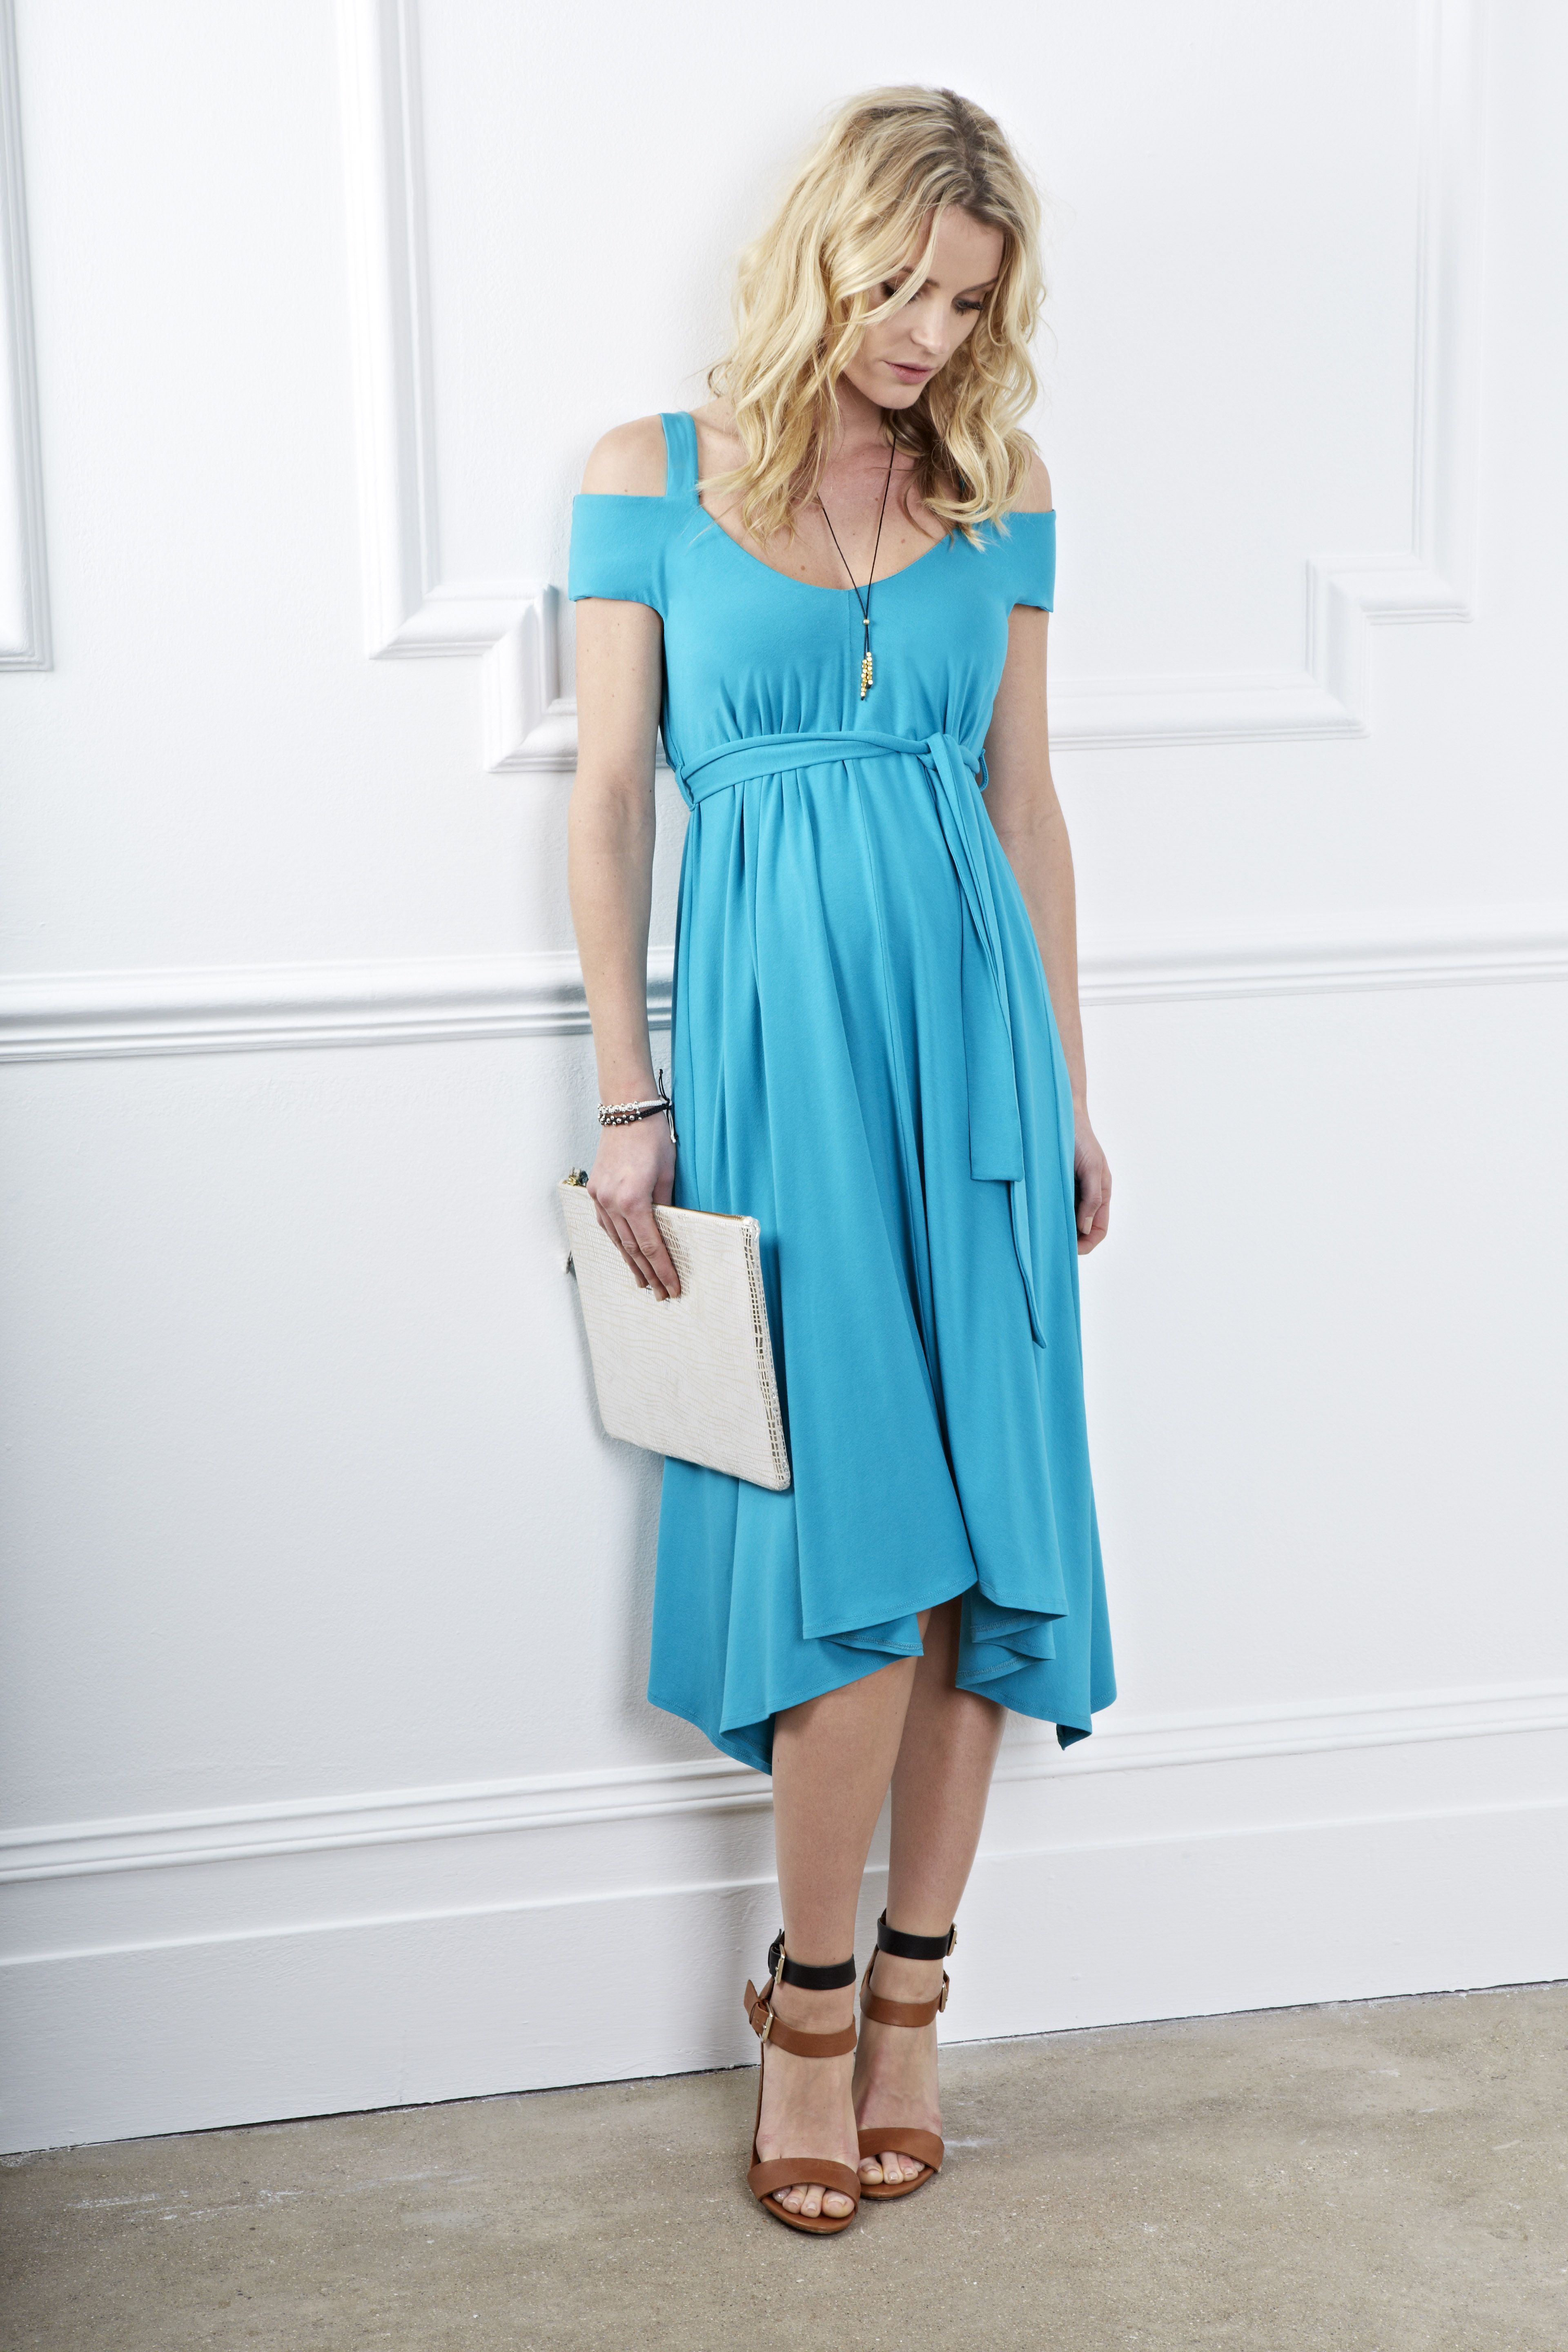 Ava maternity dress, perfect for summer party chic look | Maternity ...